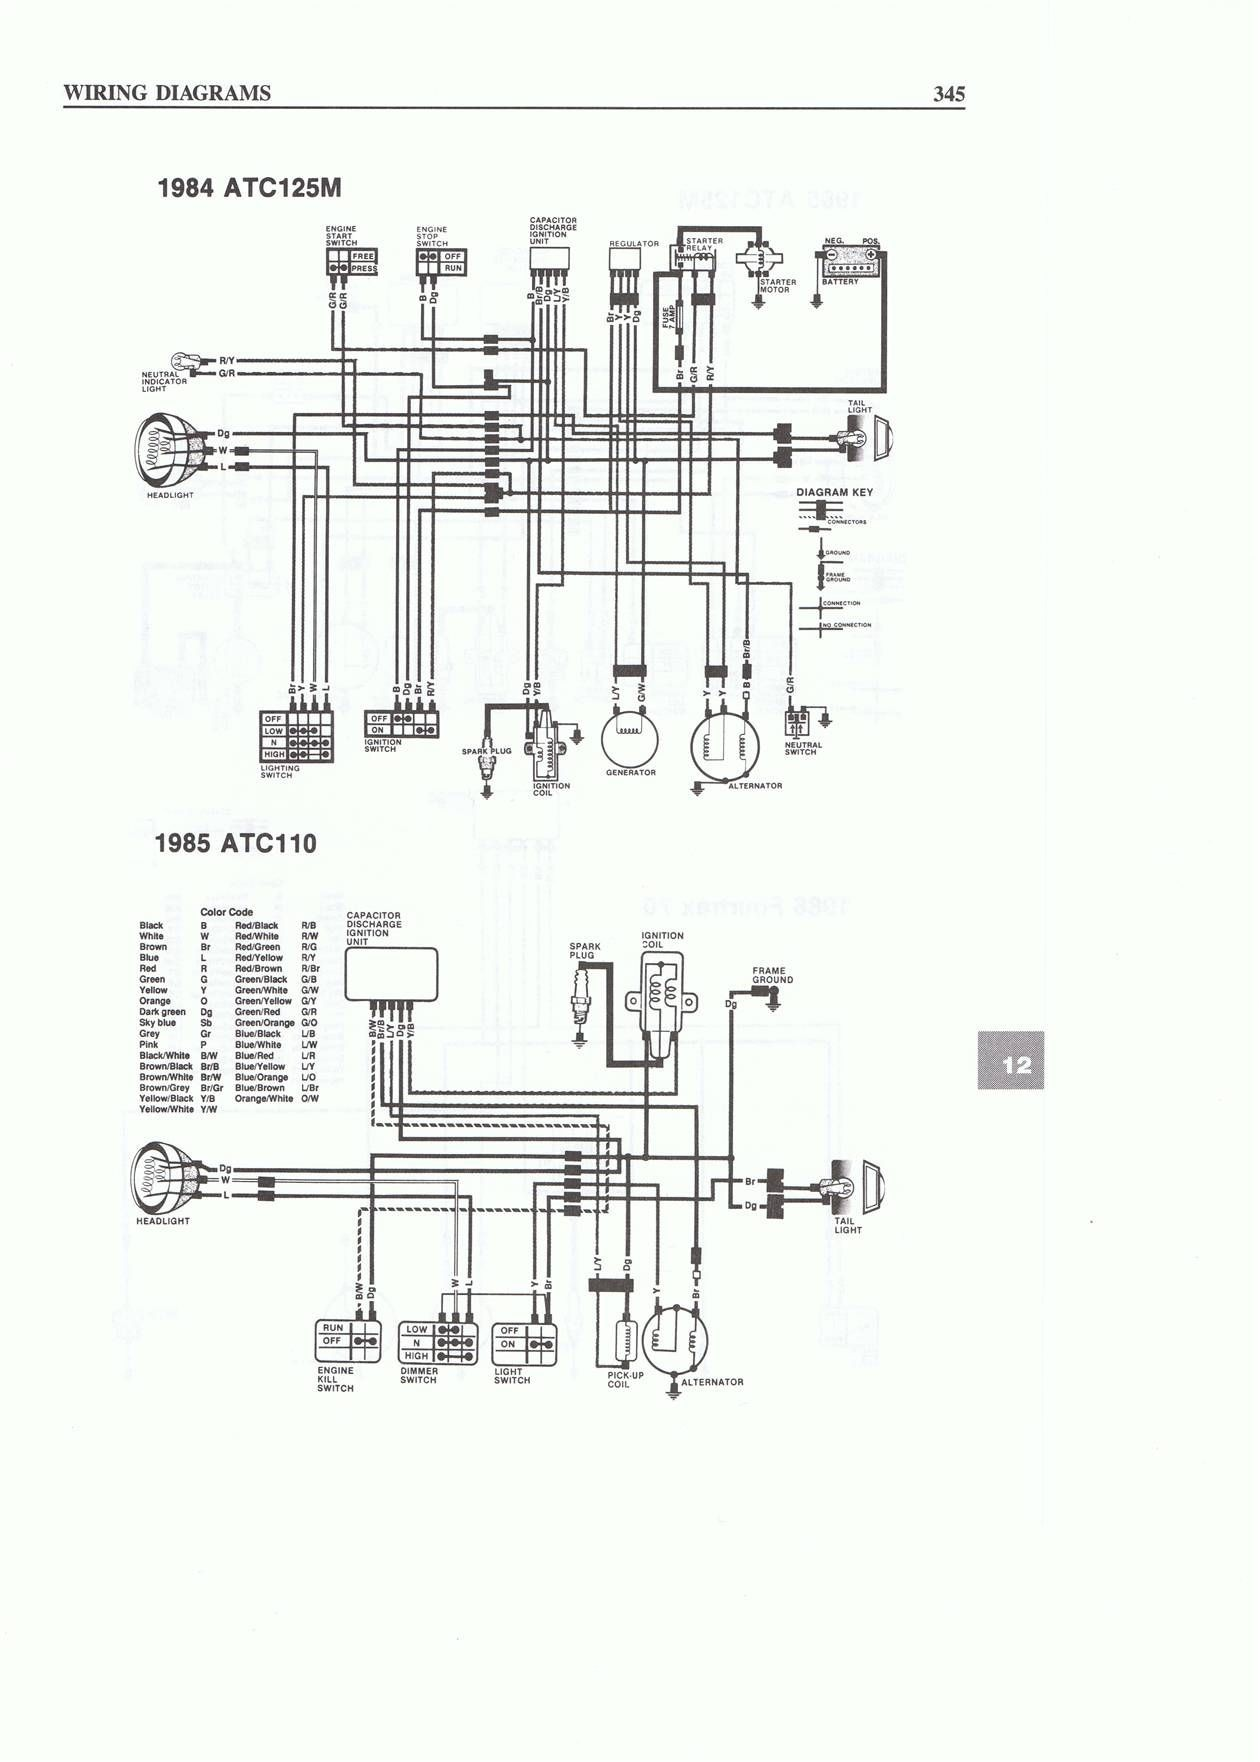 Chinese 110 Bike with Starter Wiring Diagram Diagram] 2007 110cc Chinese atv Wiring Diagram Full Version Of Chinese 110 Bike with Starter Wiring Diagram